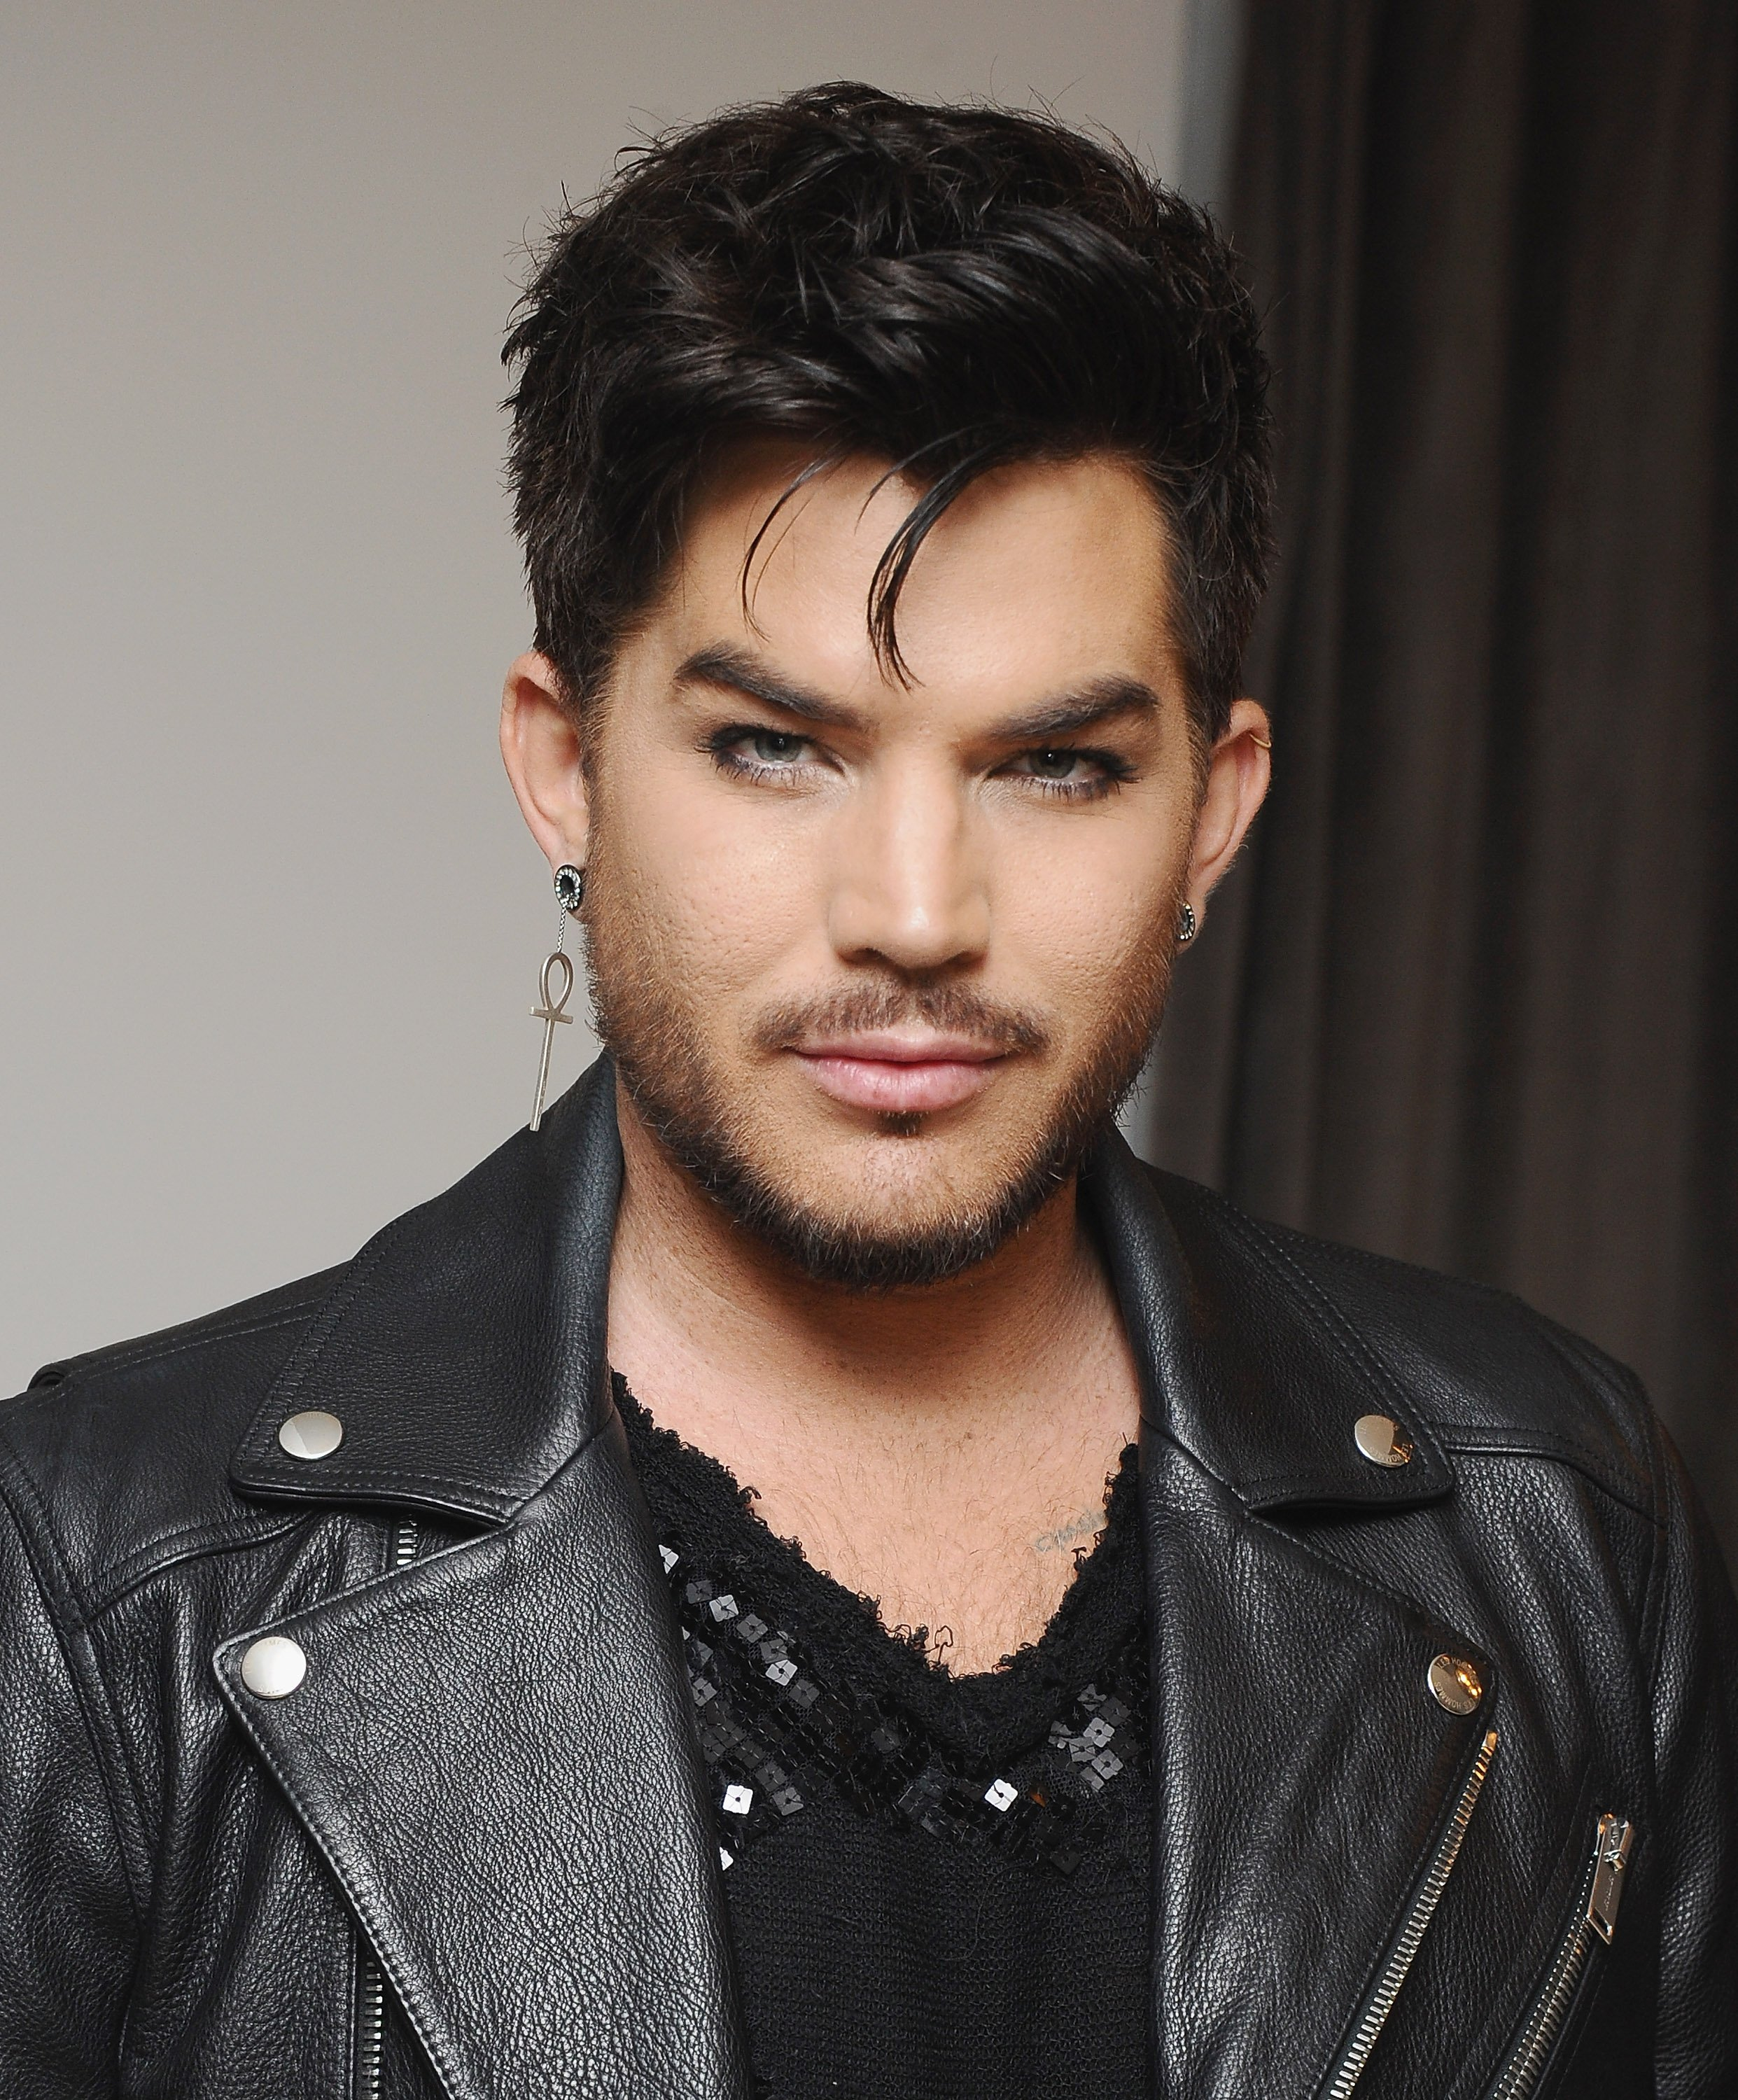 Adam Lambert attends Wolk Morais Collection 6 Fashion Show at The Hollywood Roosevelt Hotel | Photos: Getty Images